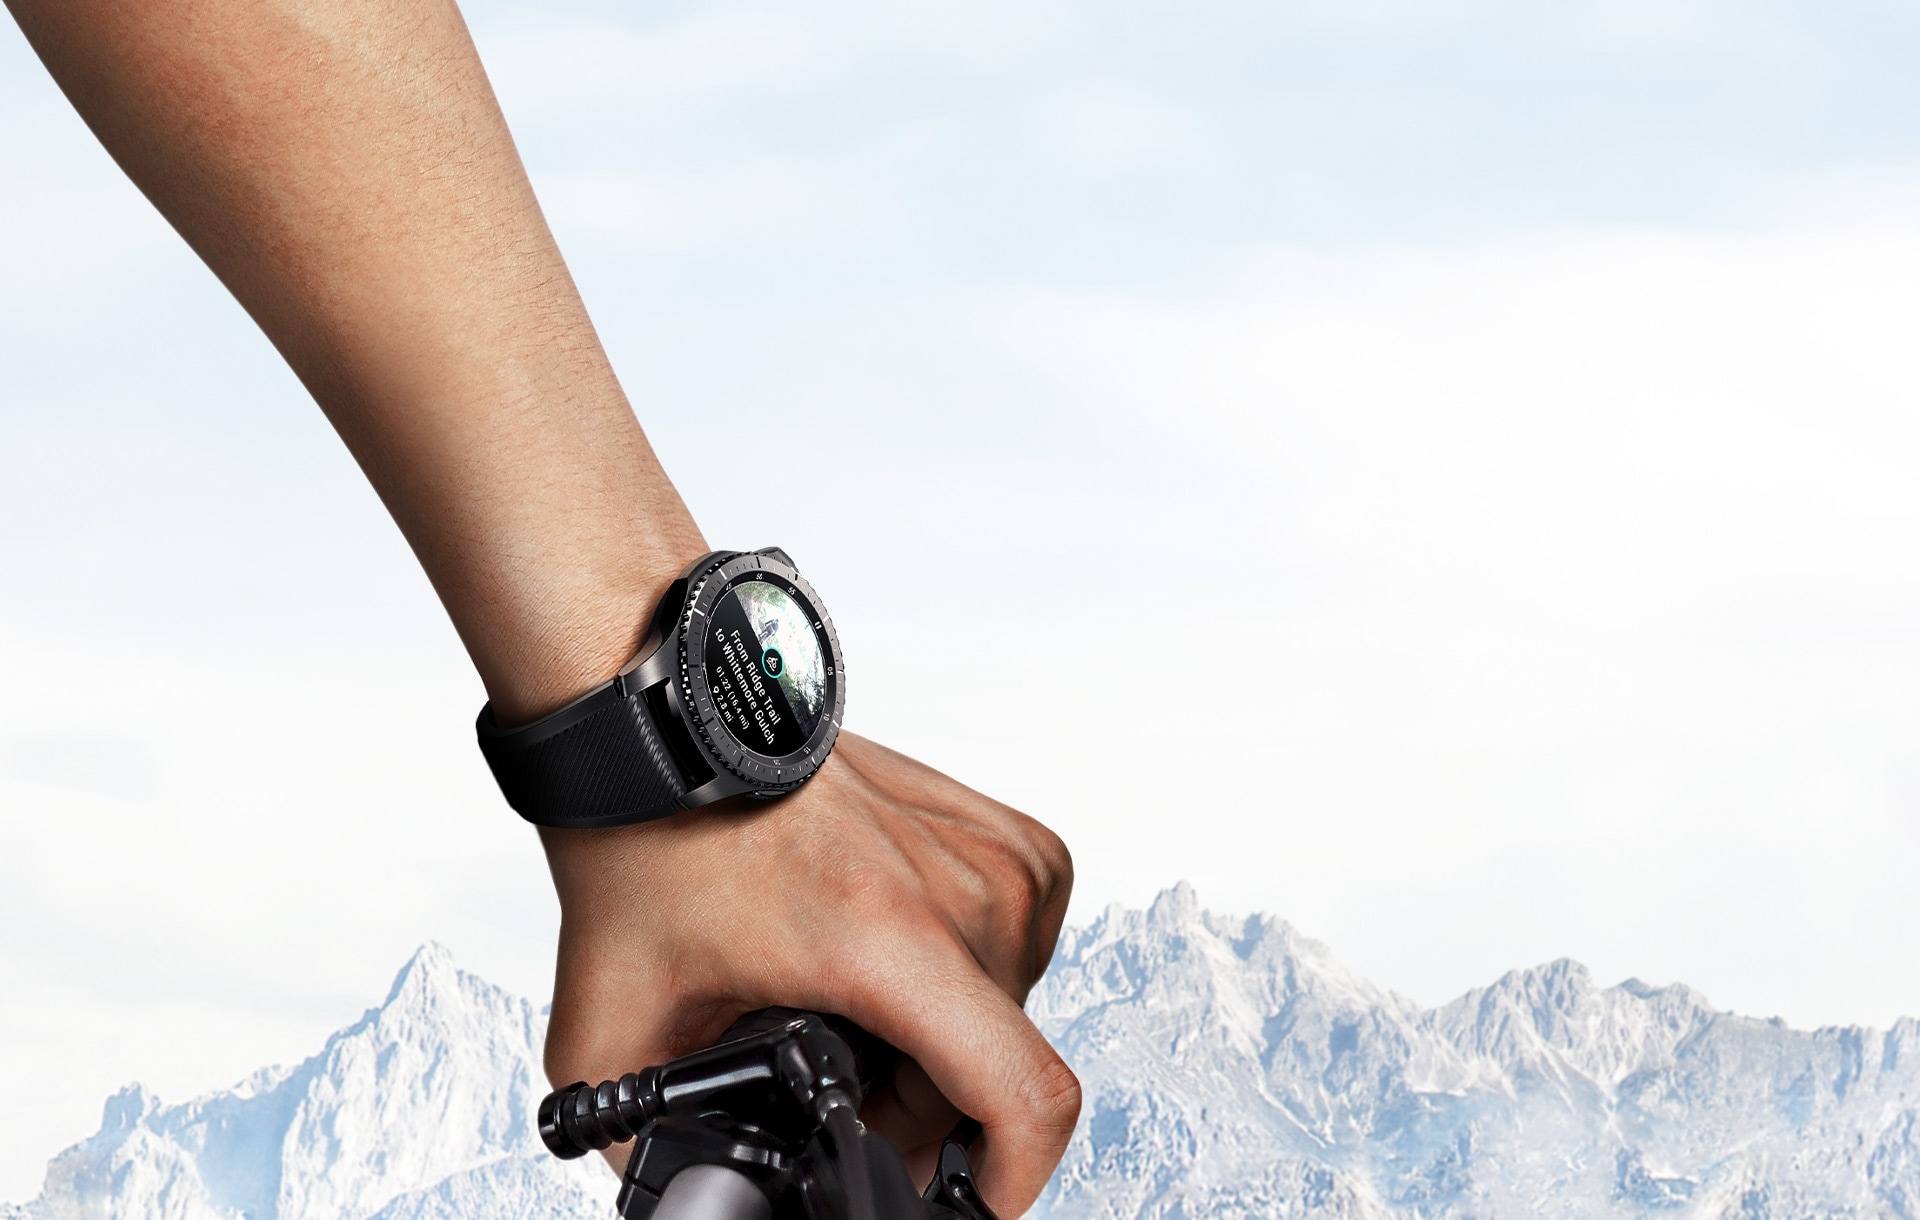 Gear S3 is worn on wrist